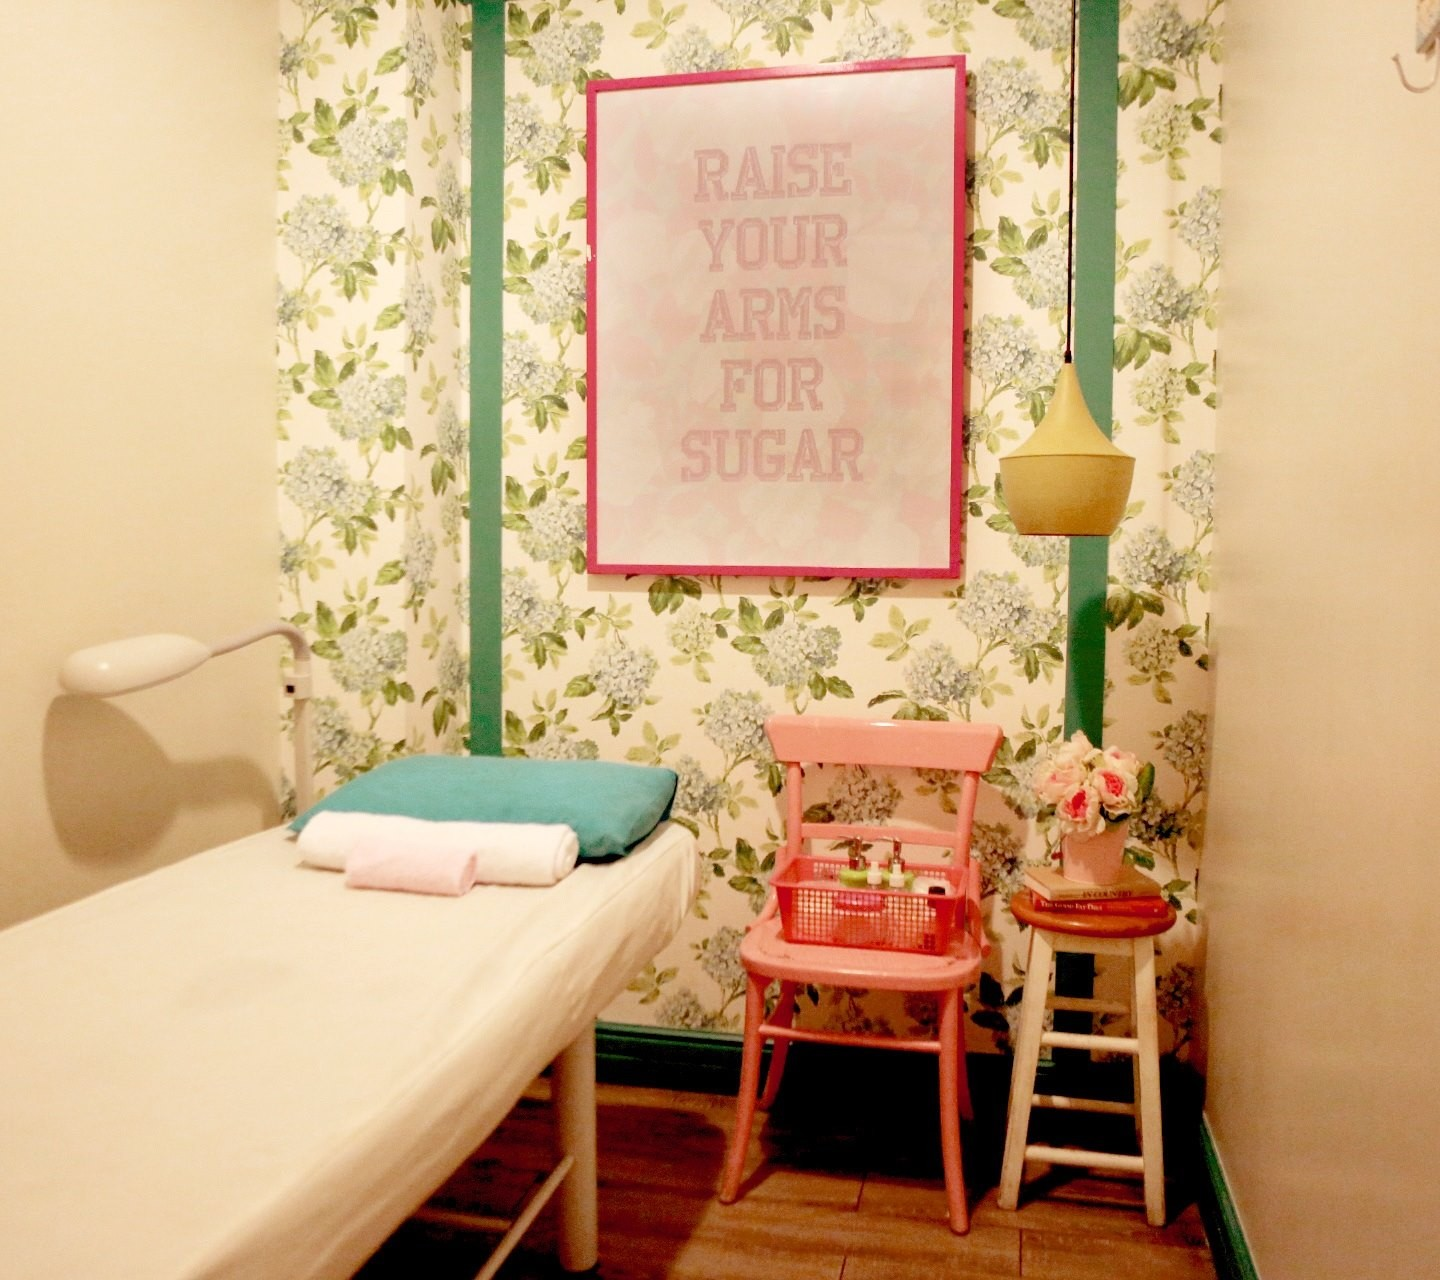 Safest and 100% Sugar Waxing Salon Opens in SM Calamba